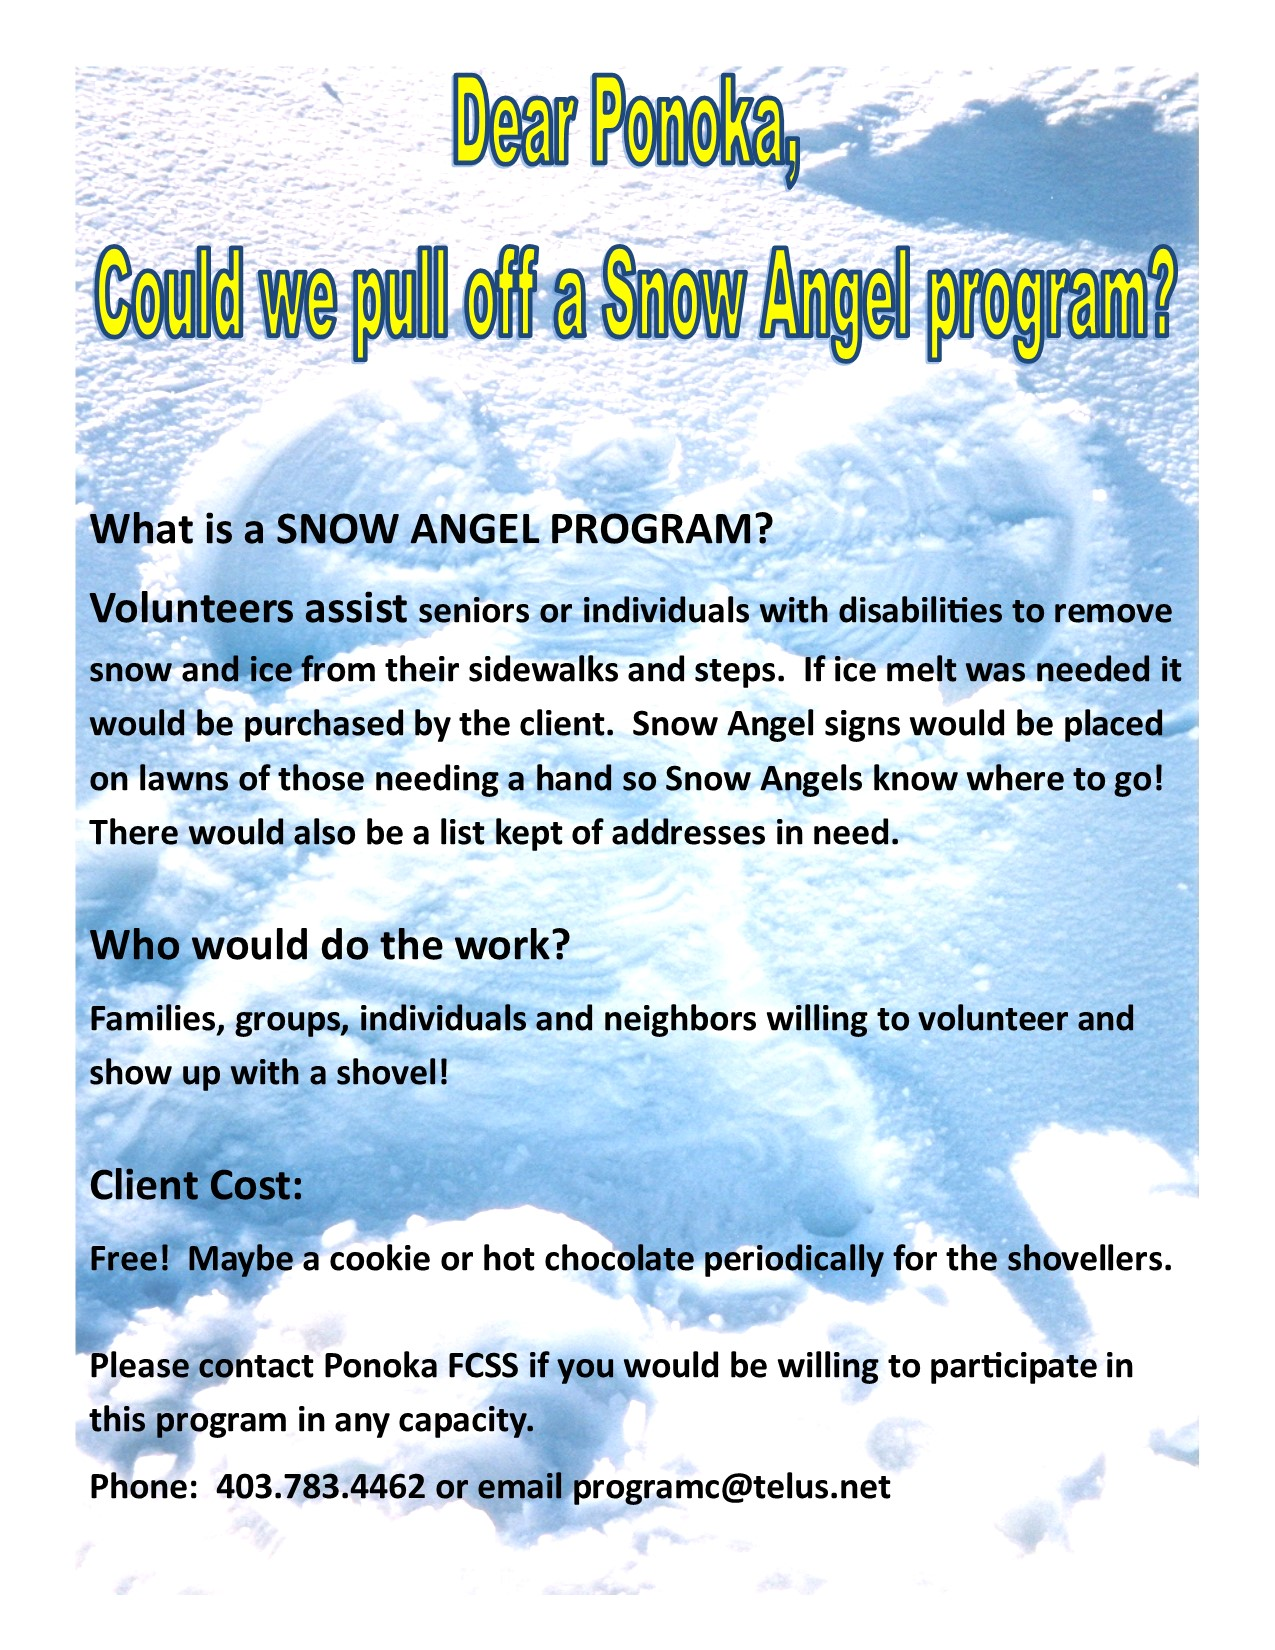 Snow Angel Program - contact FCSS at 403-783-4462